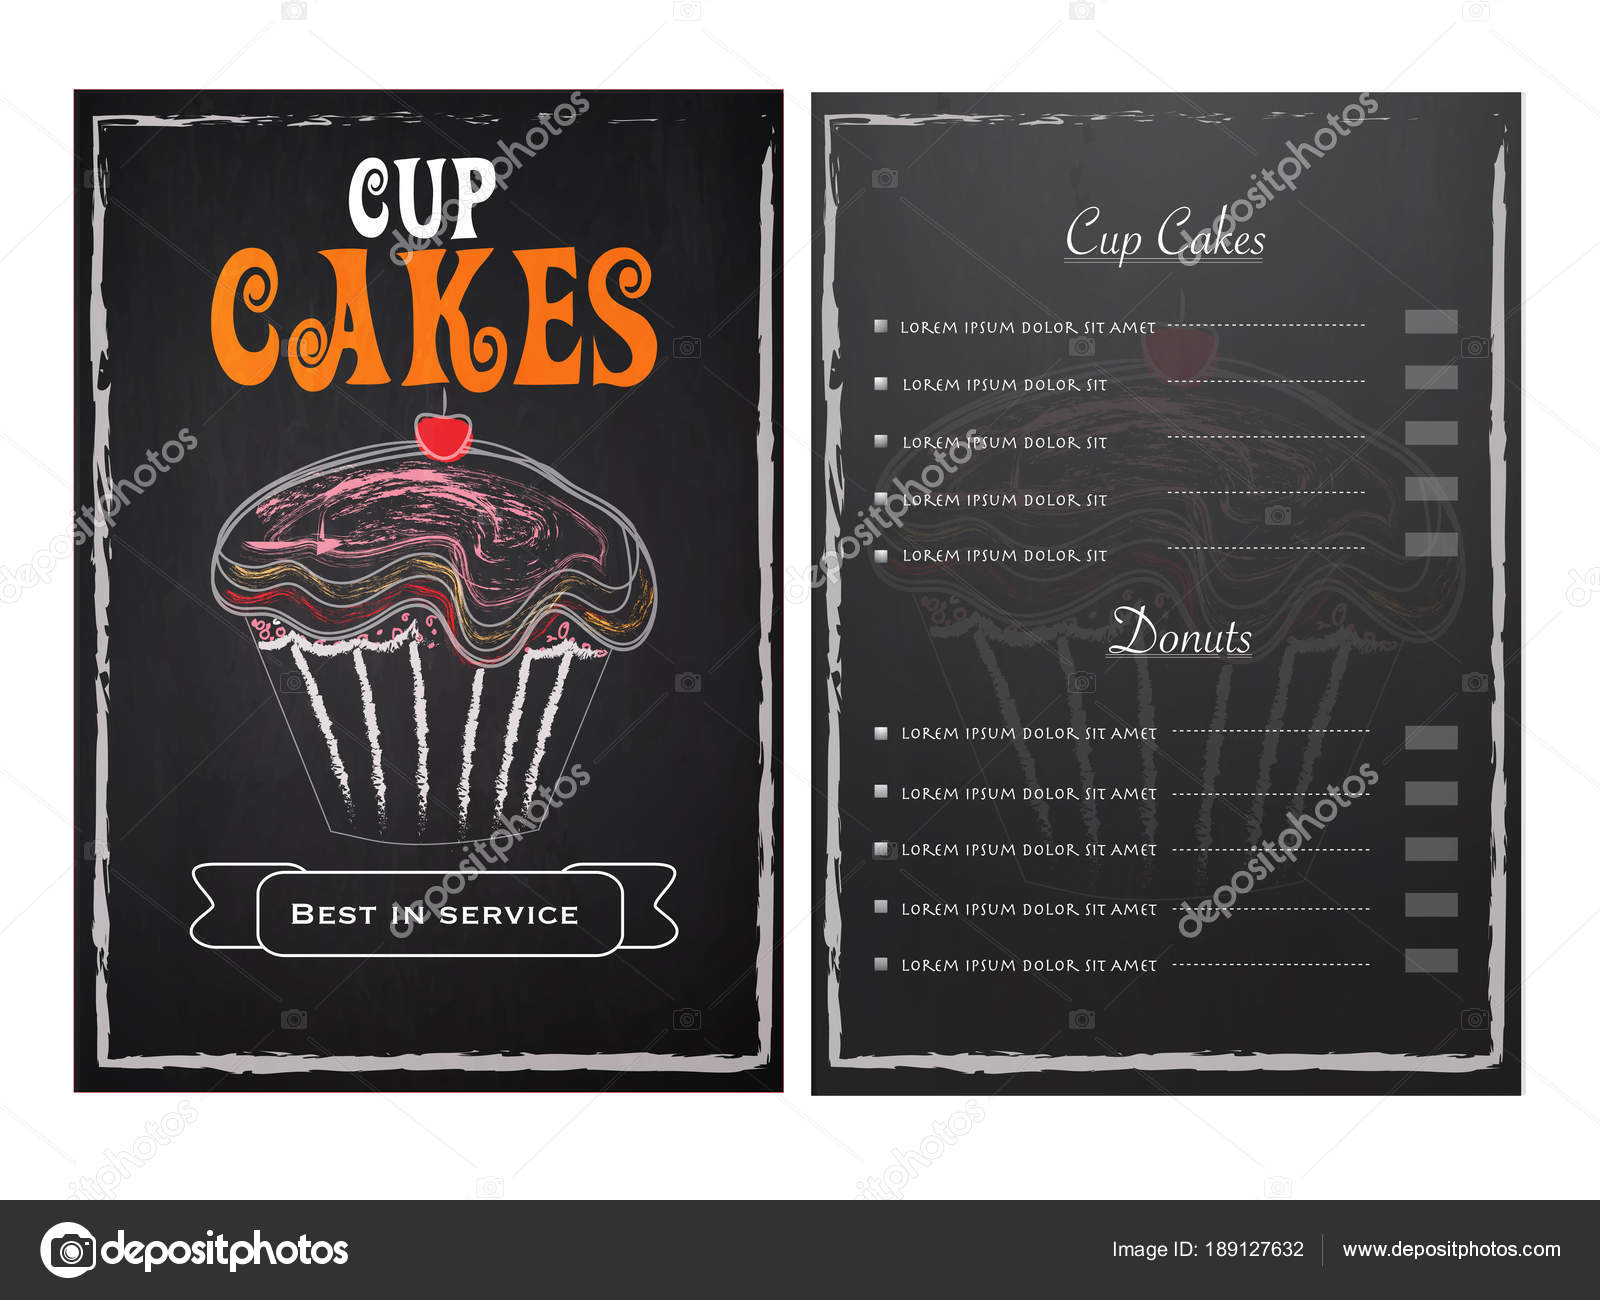 Cup Cakes Menu Card Design With Front And Back Page View Stock